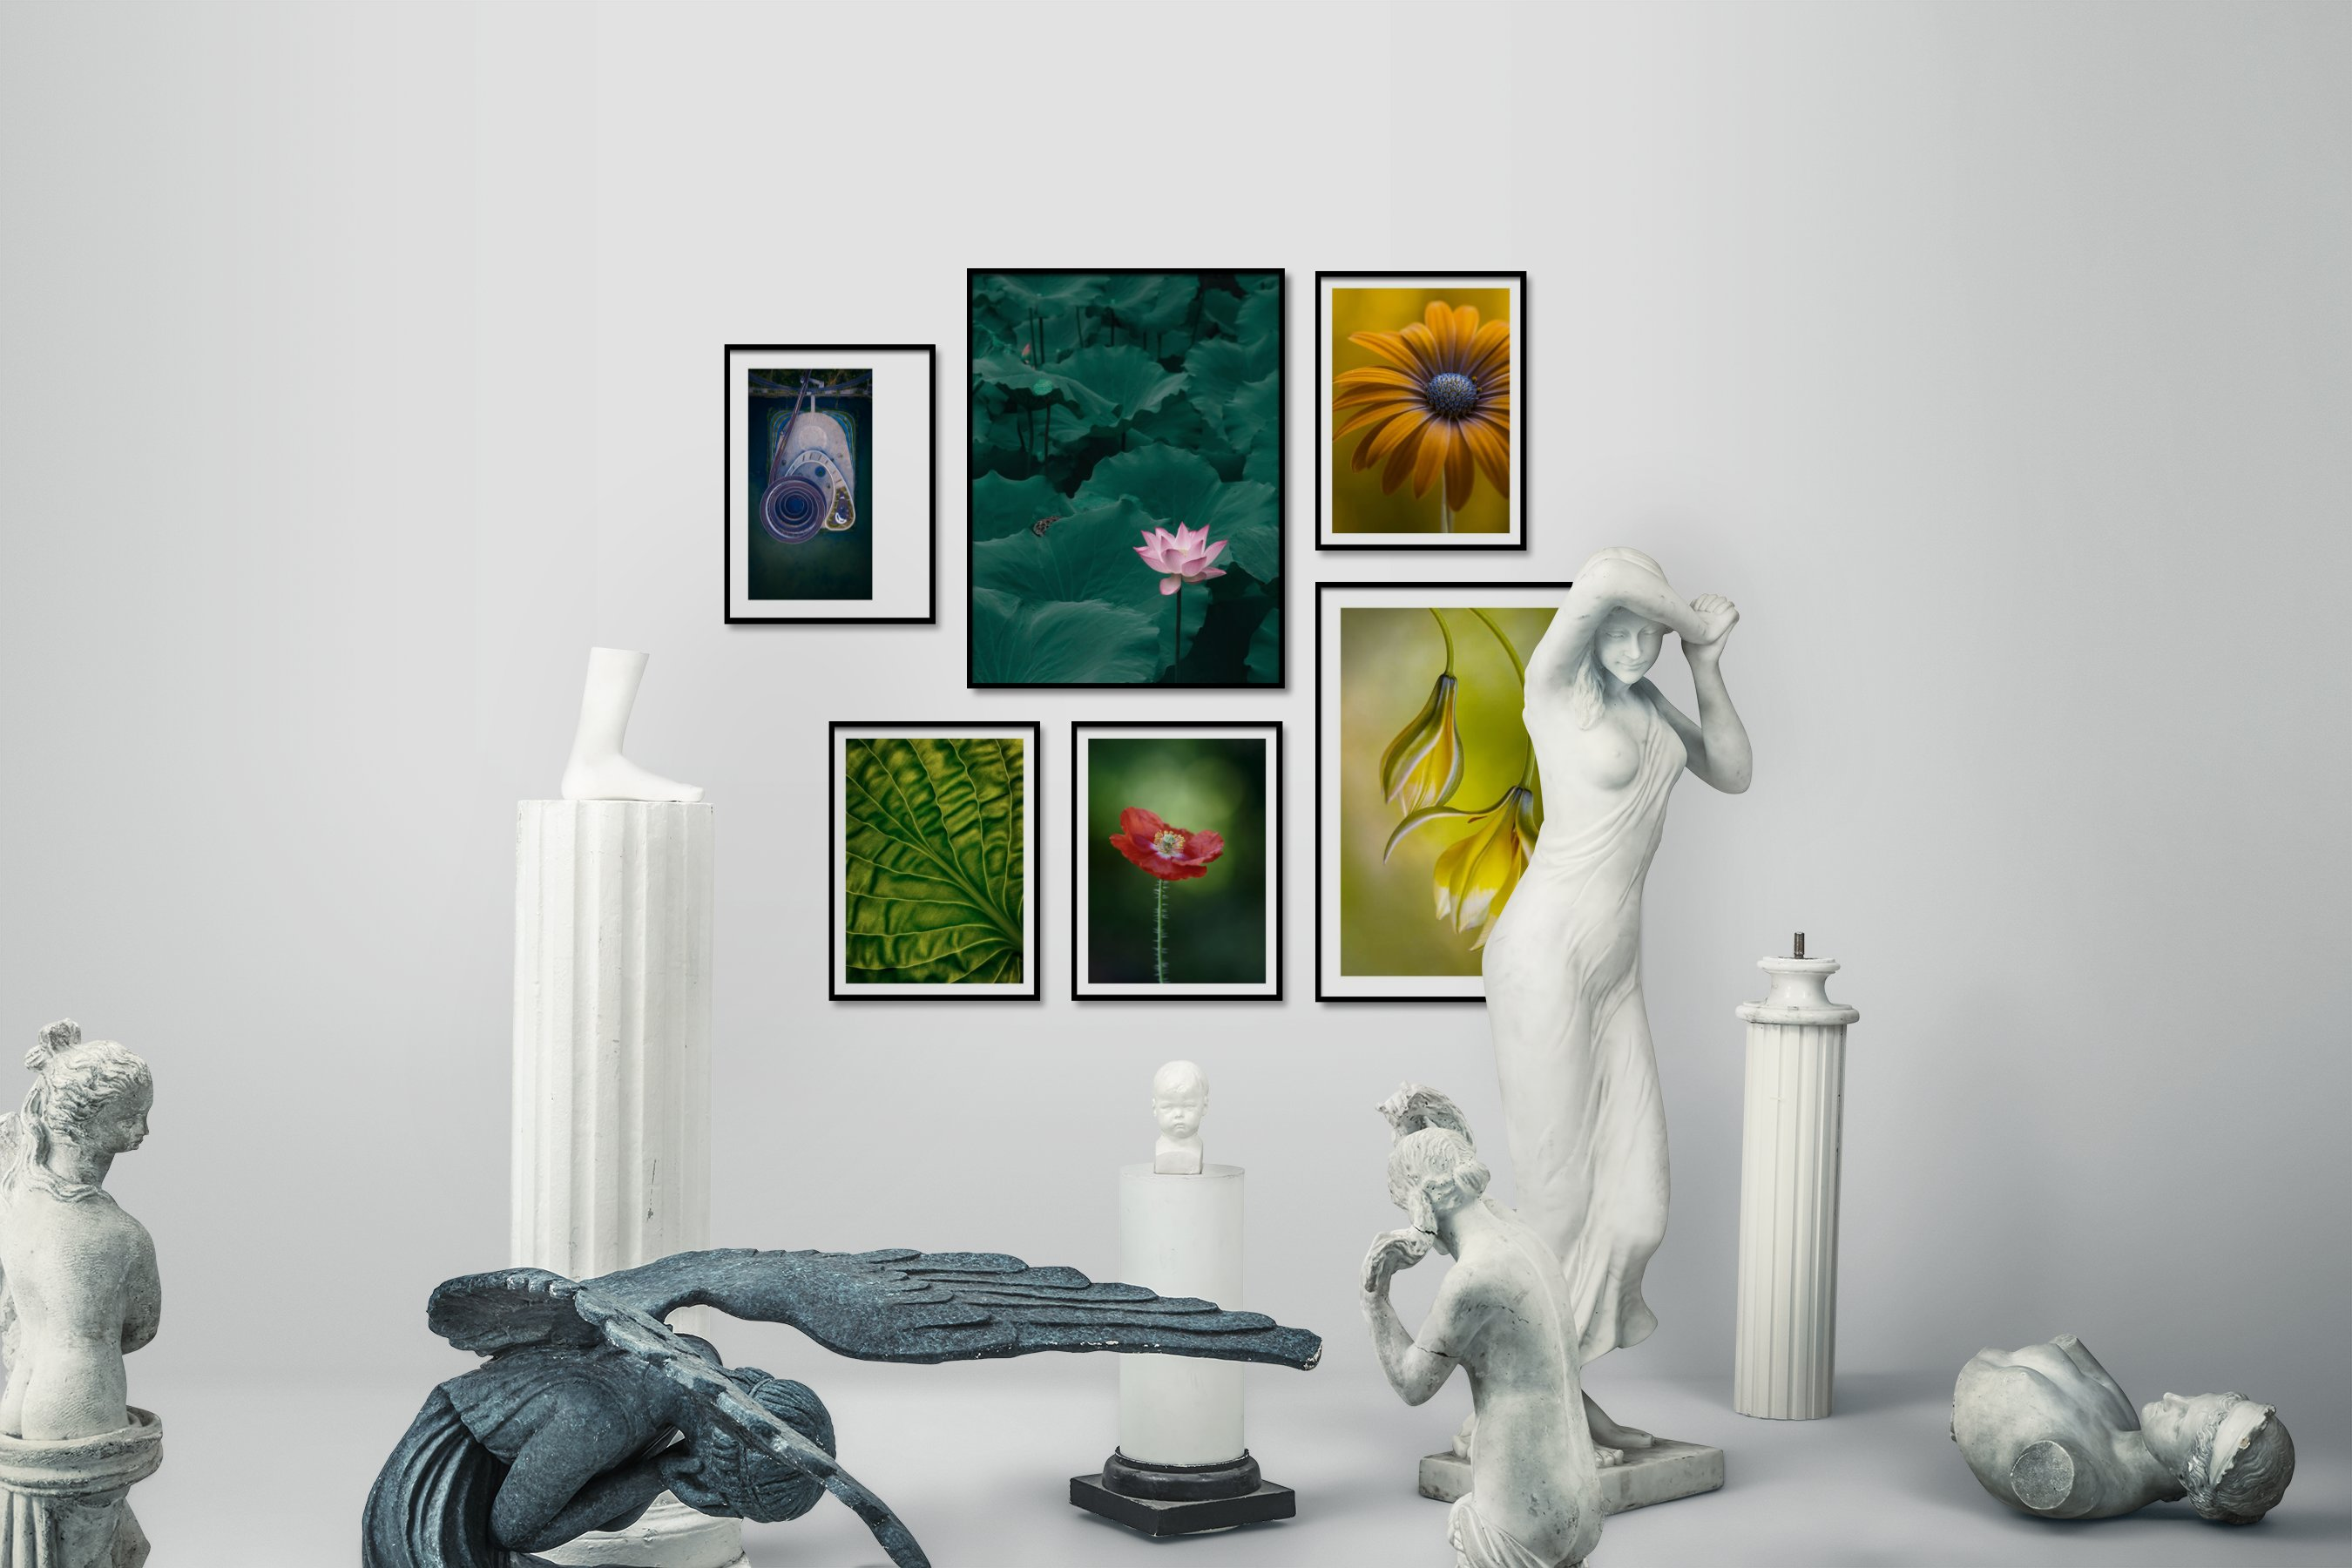 Gallery wall idea with six framed pictures arranged on a wall depicting For the Moderate, Flowers & Plants, and For the Minimalist